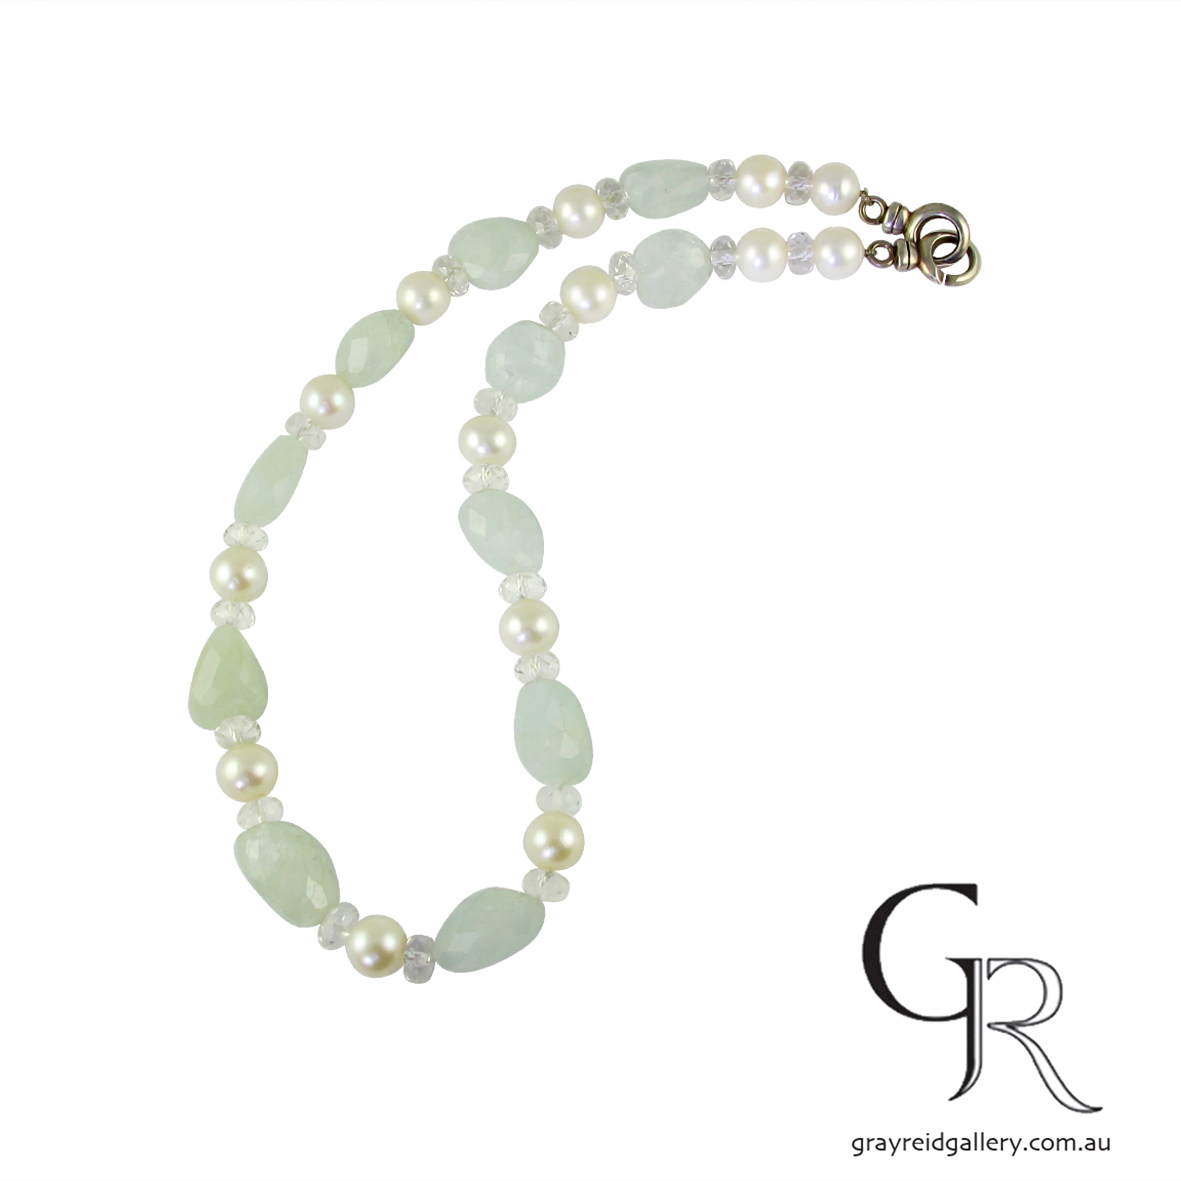 Aquamarine & Fresh Water Pearl Beads